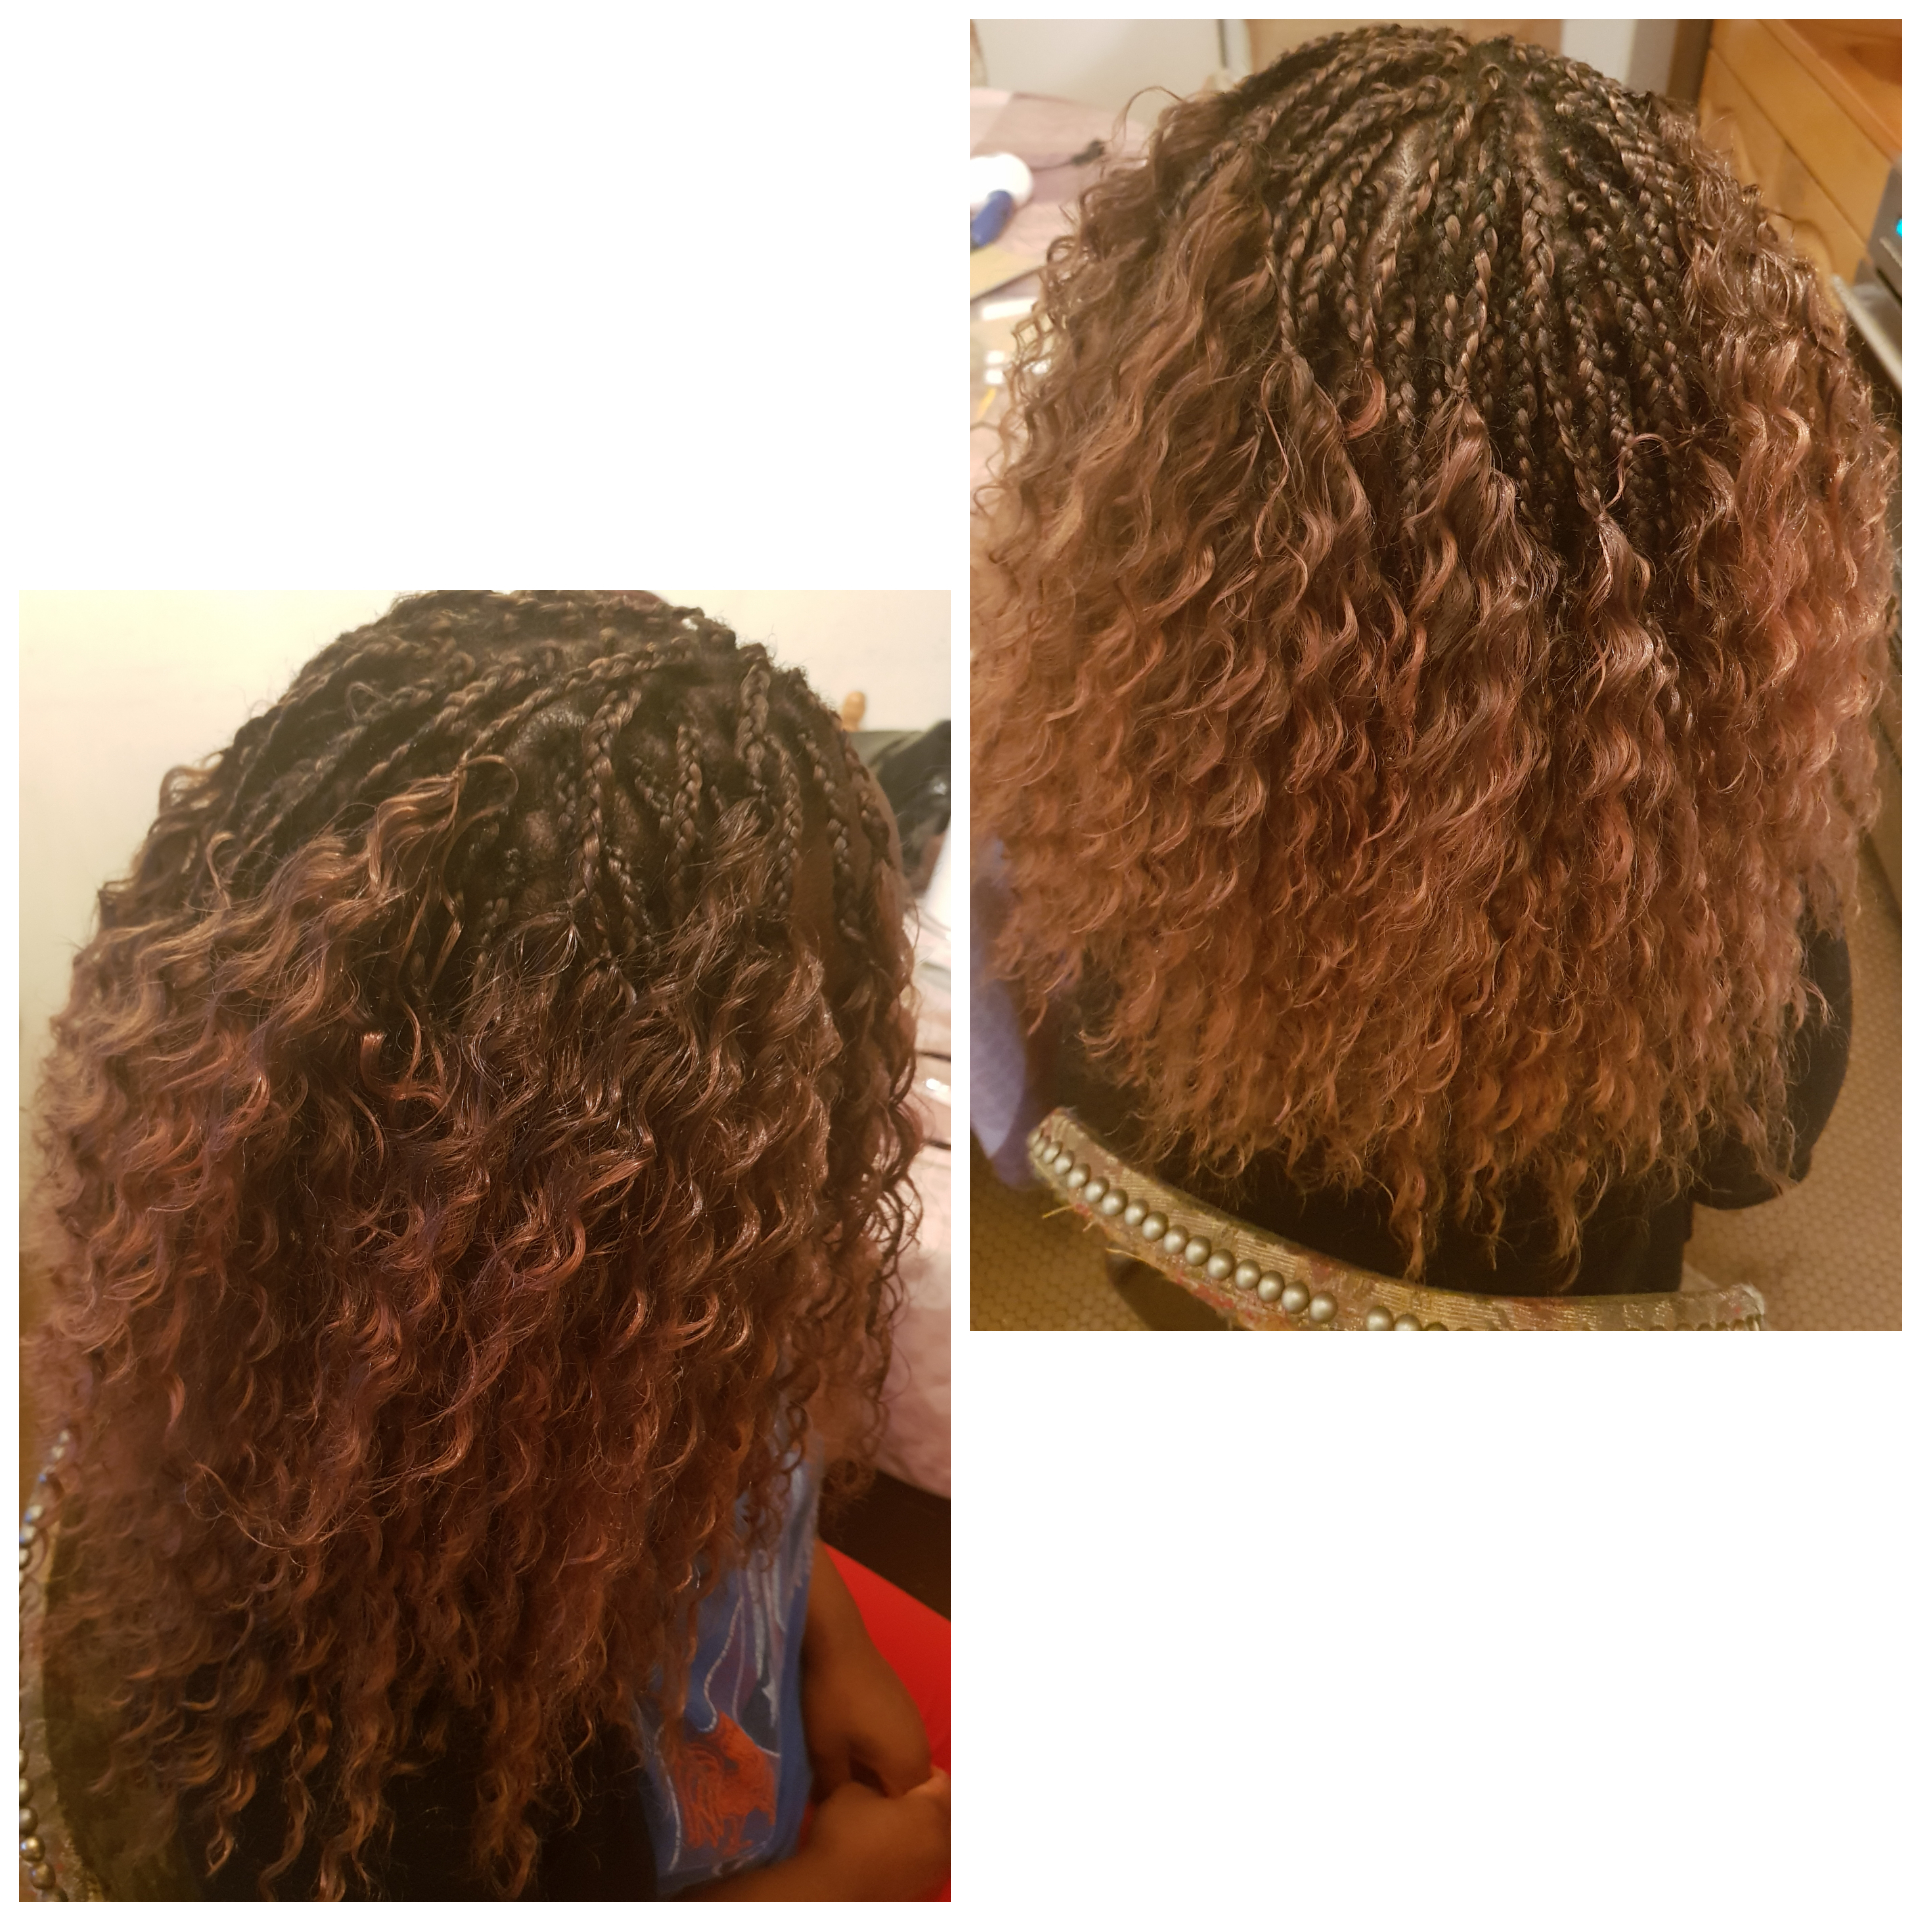 salon de coiffure afro tresse tresses box braids crochet braids vanilles tissages paris 75 77 78 91 92 93 94 95 RYGPPDBT